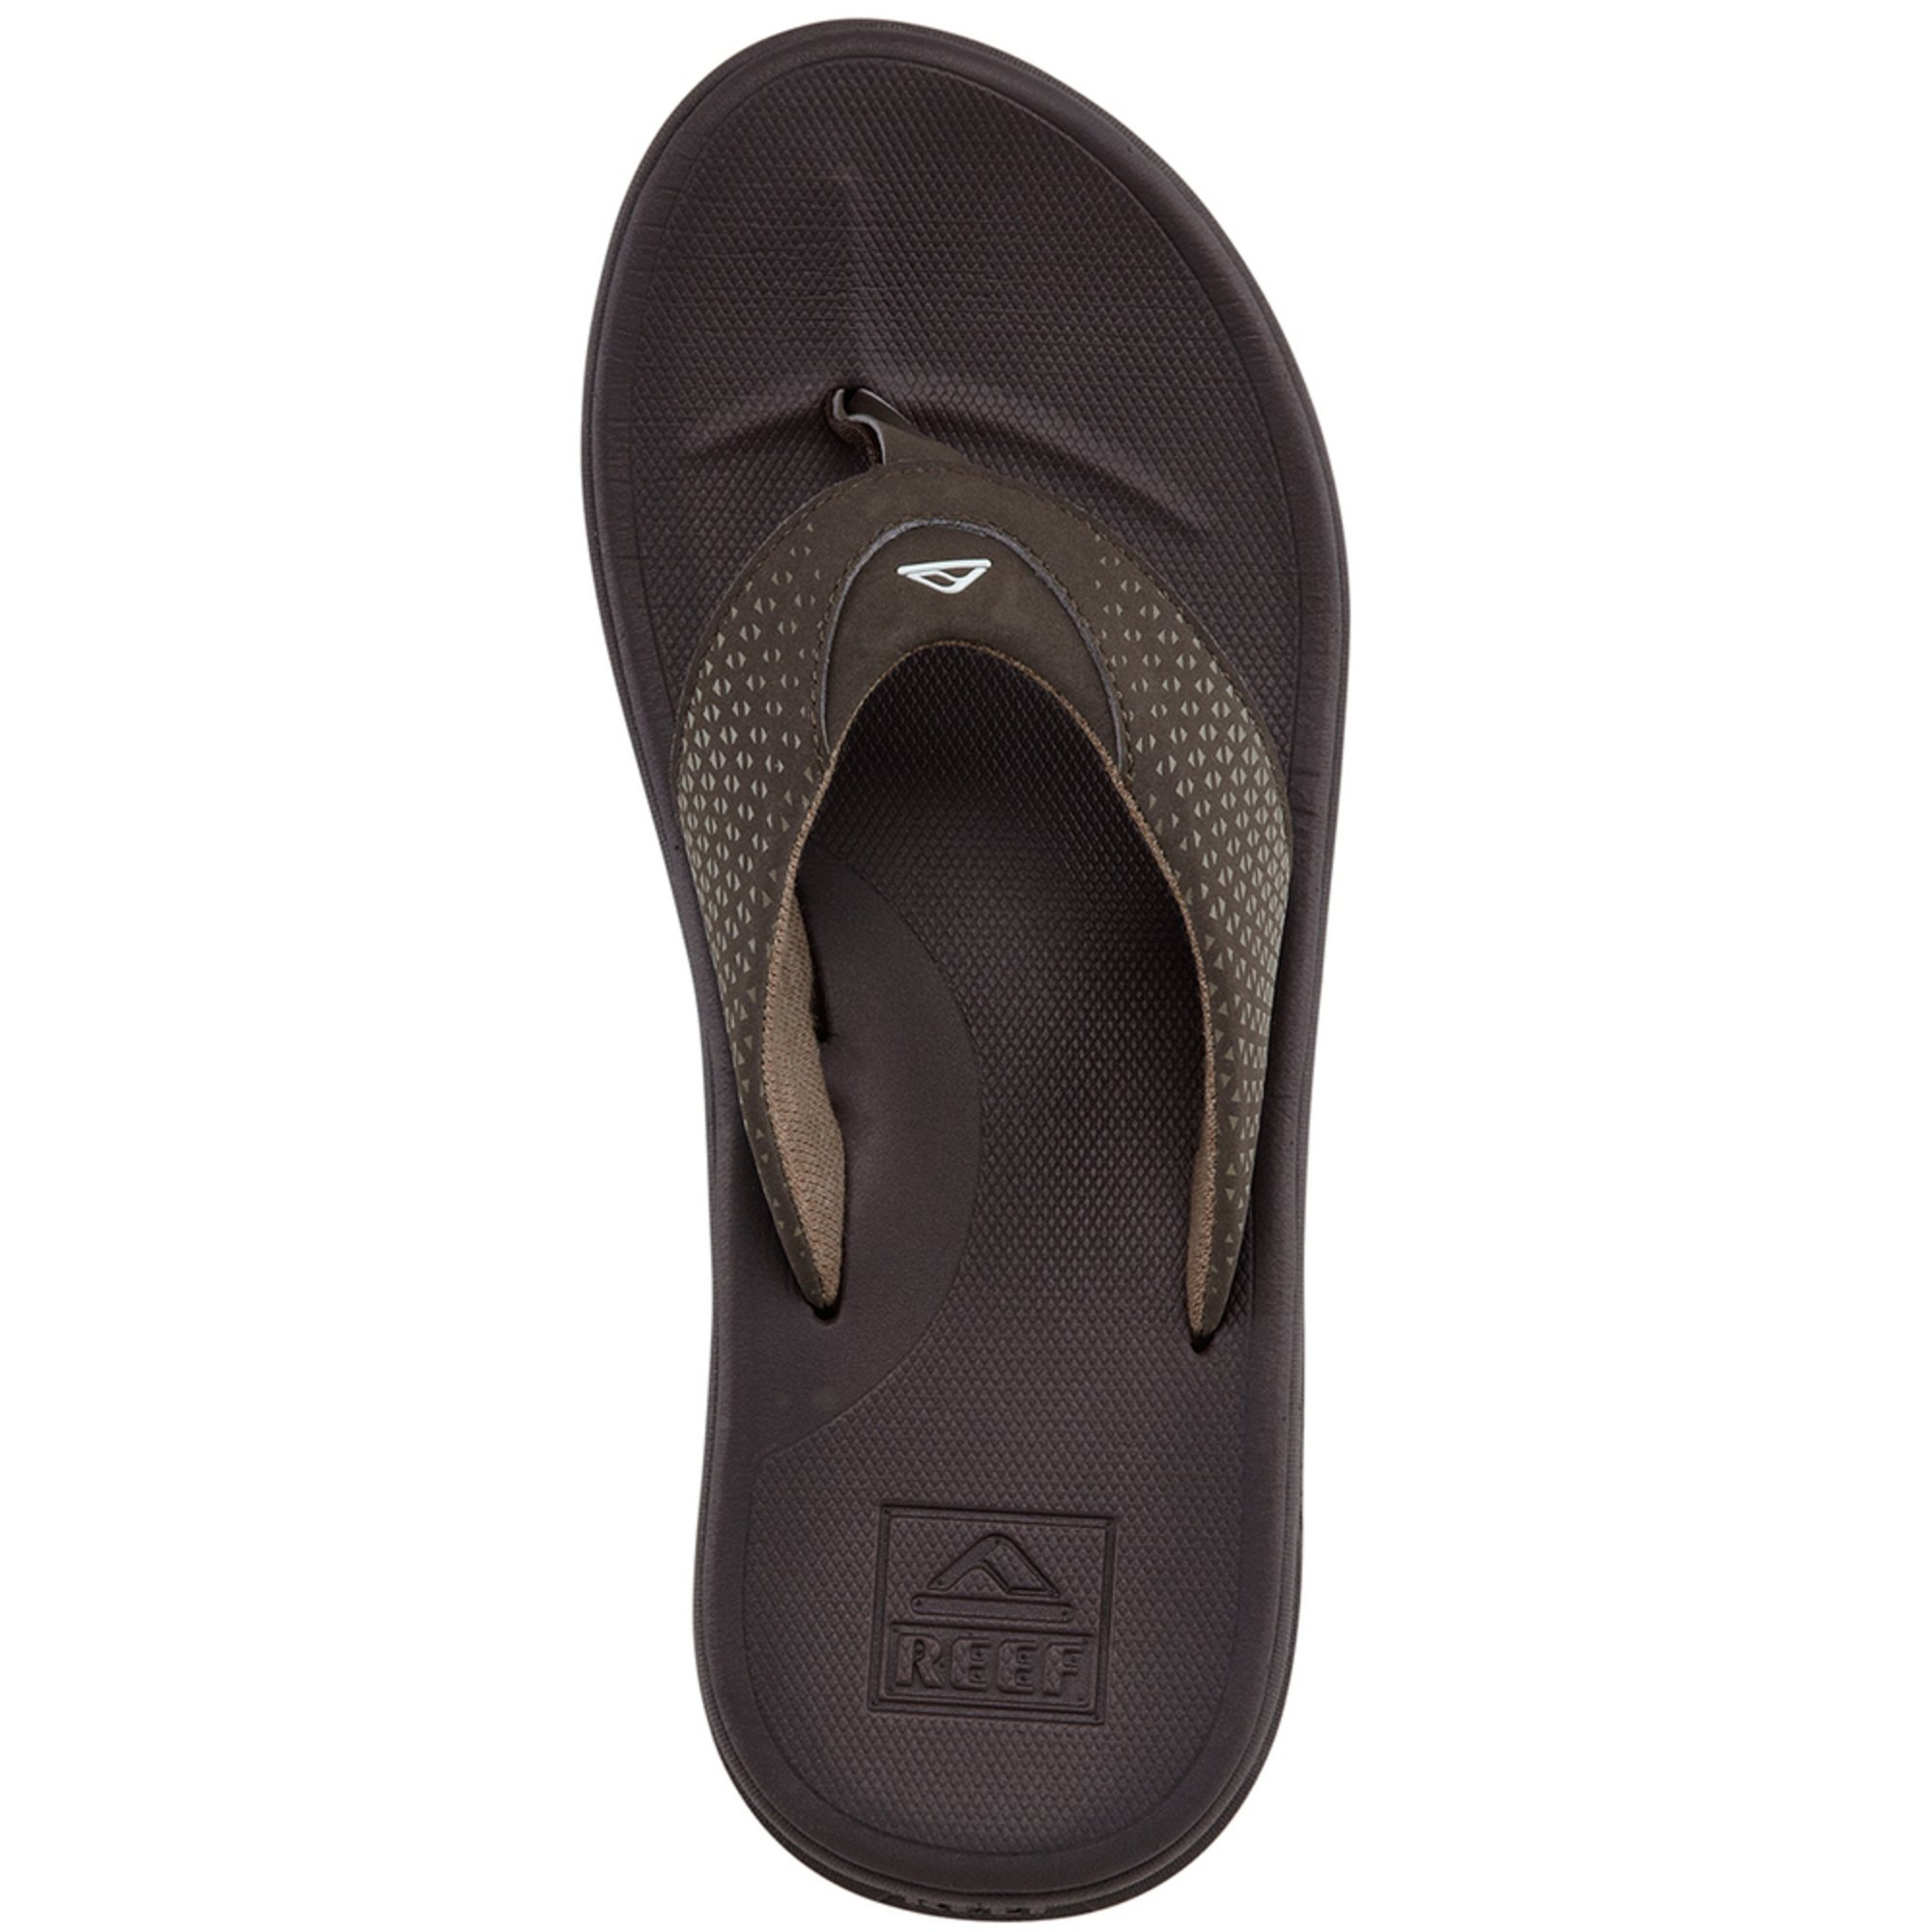 0d0893736414 Reef. Reef Men s Rover Thong Sandal. Product Rating 4 4